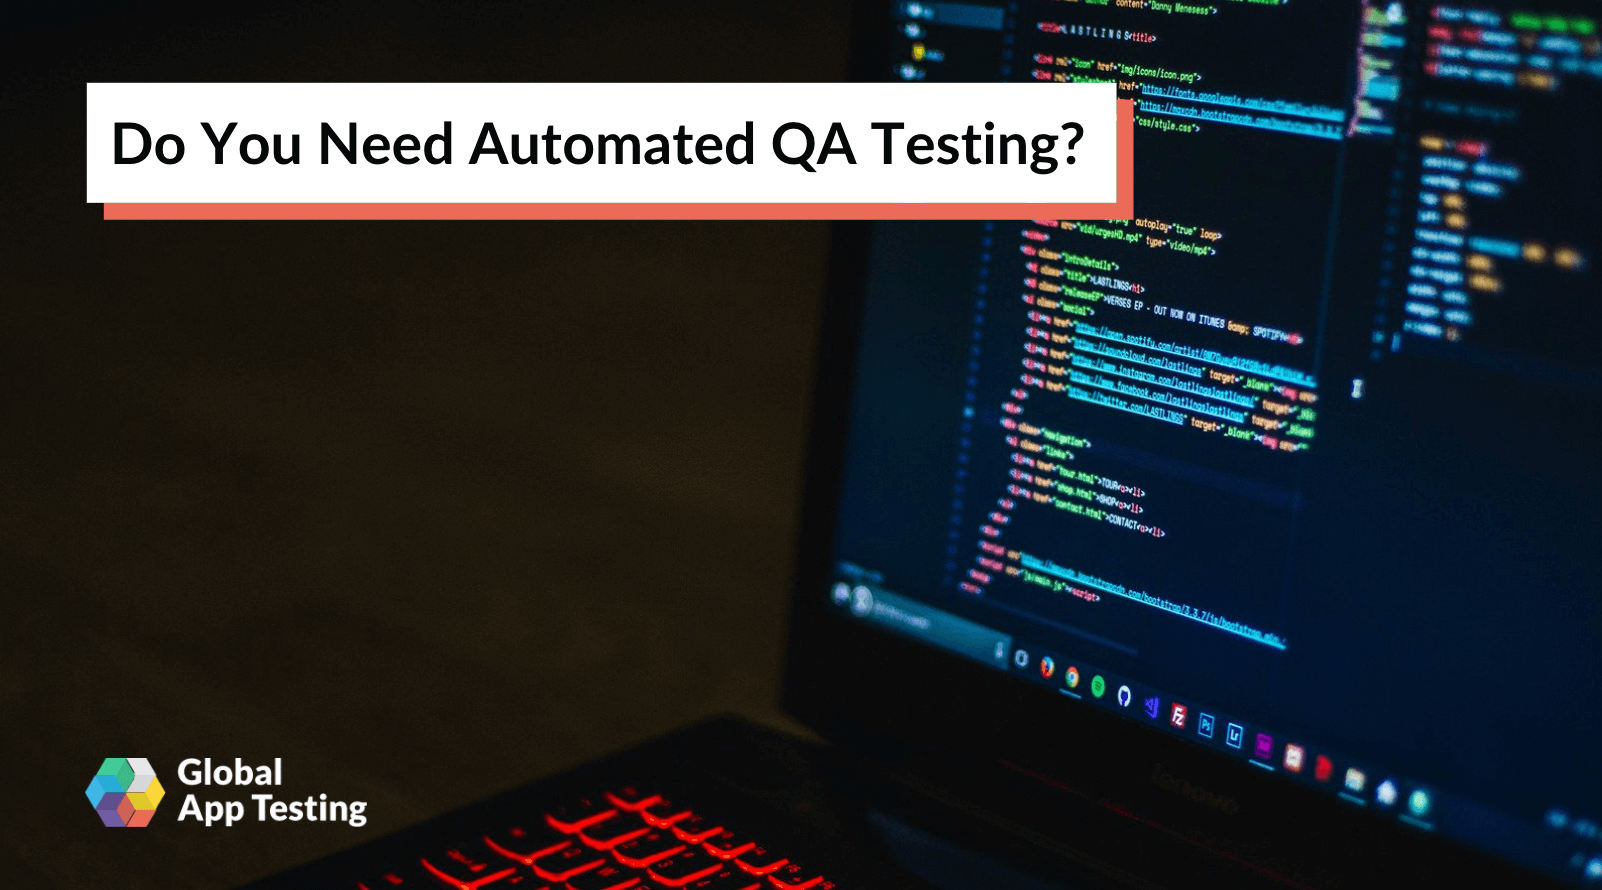 What is automated QA testing?